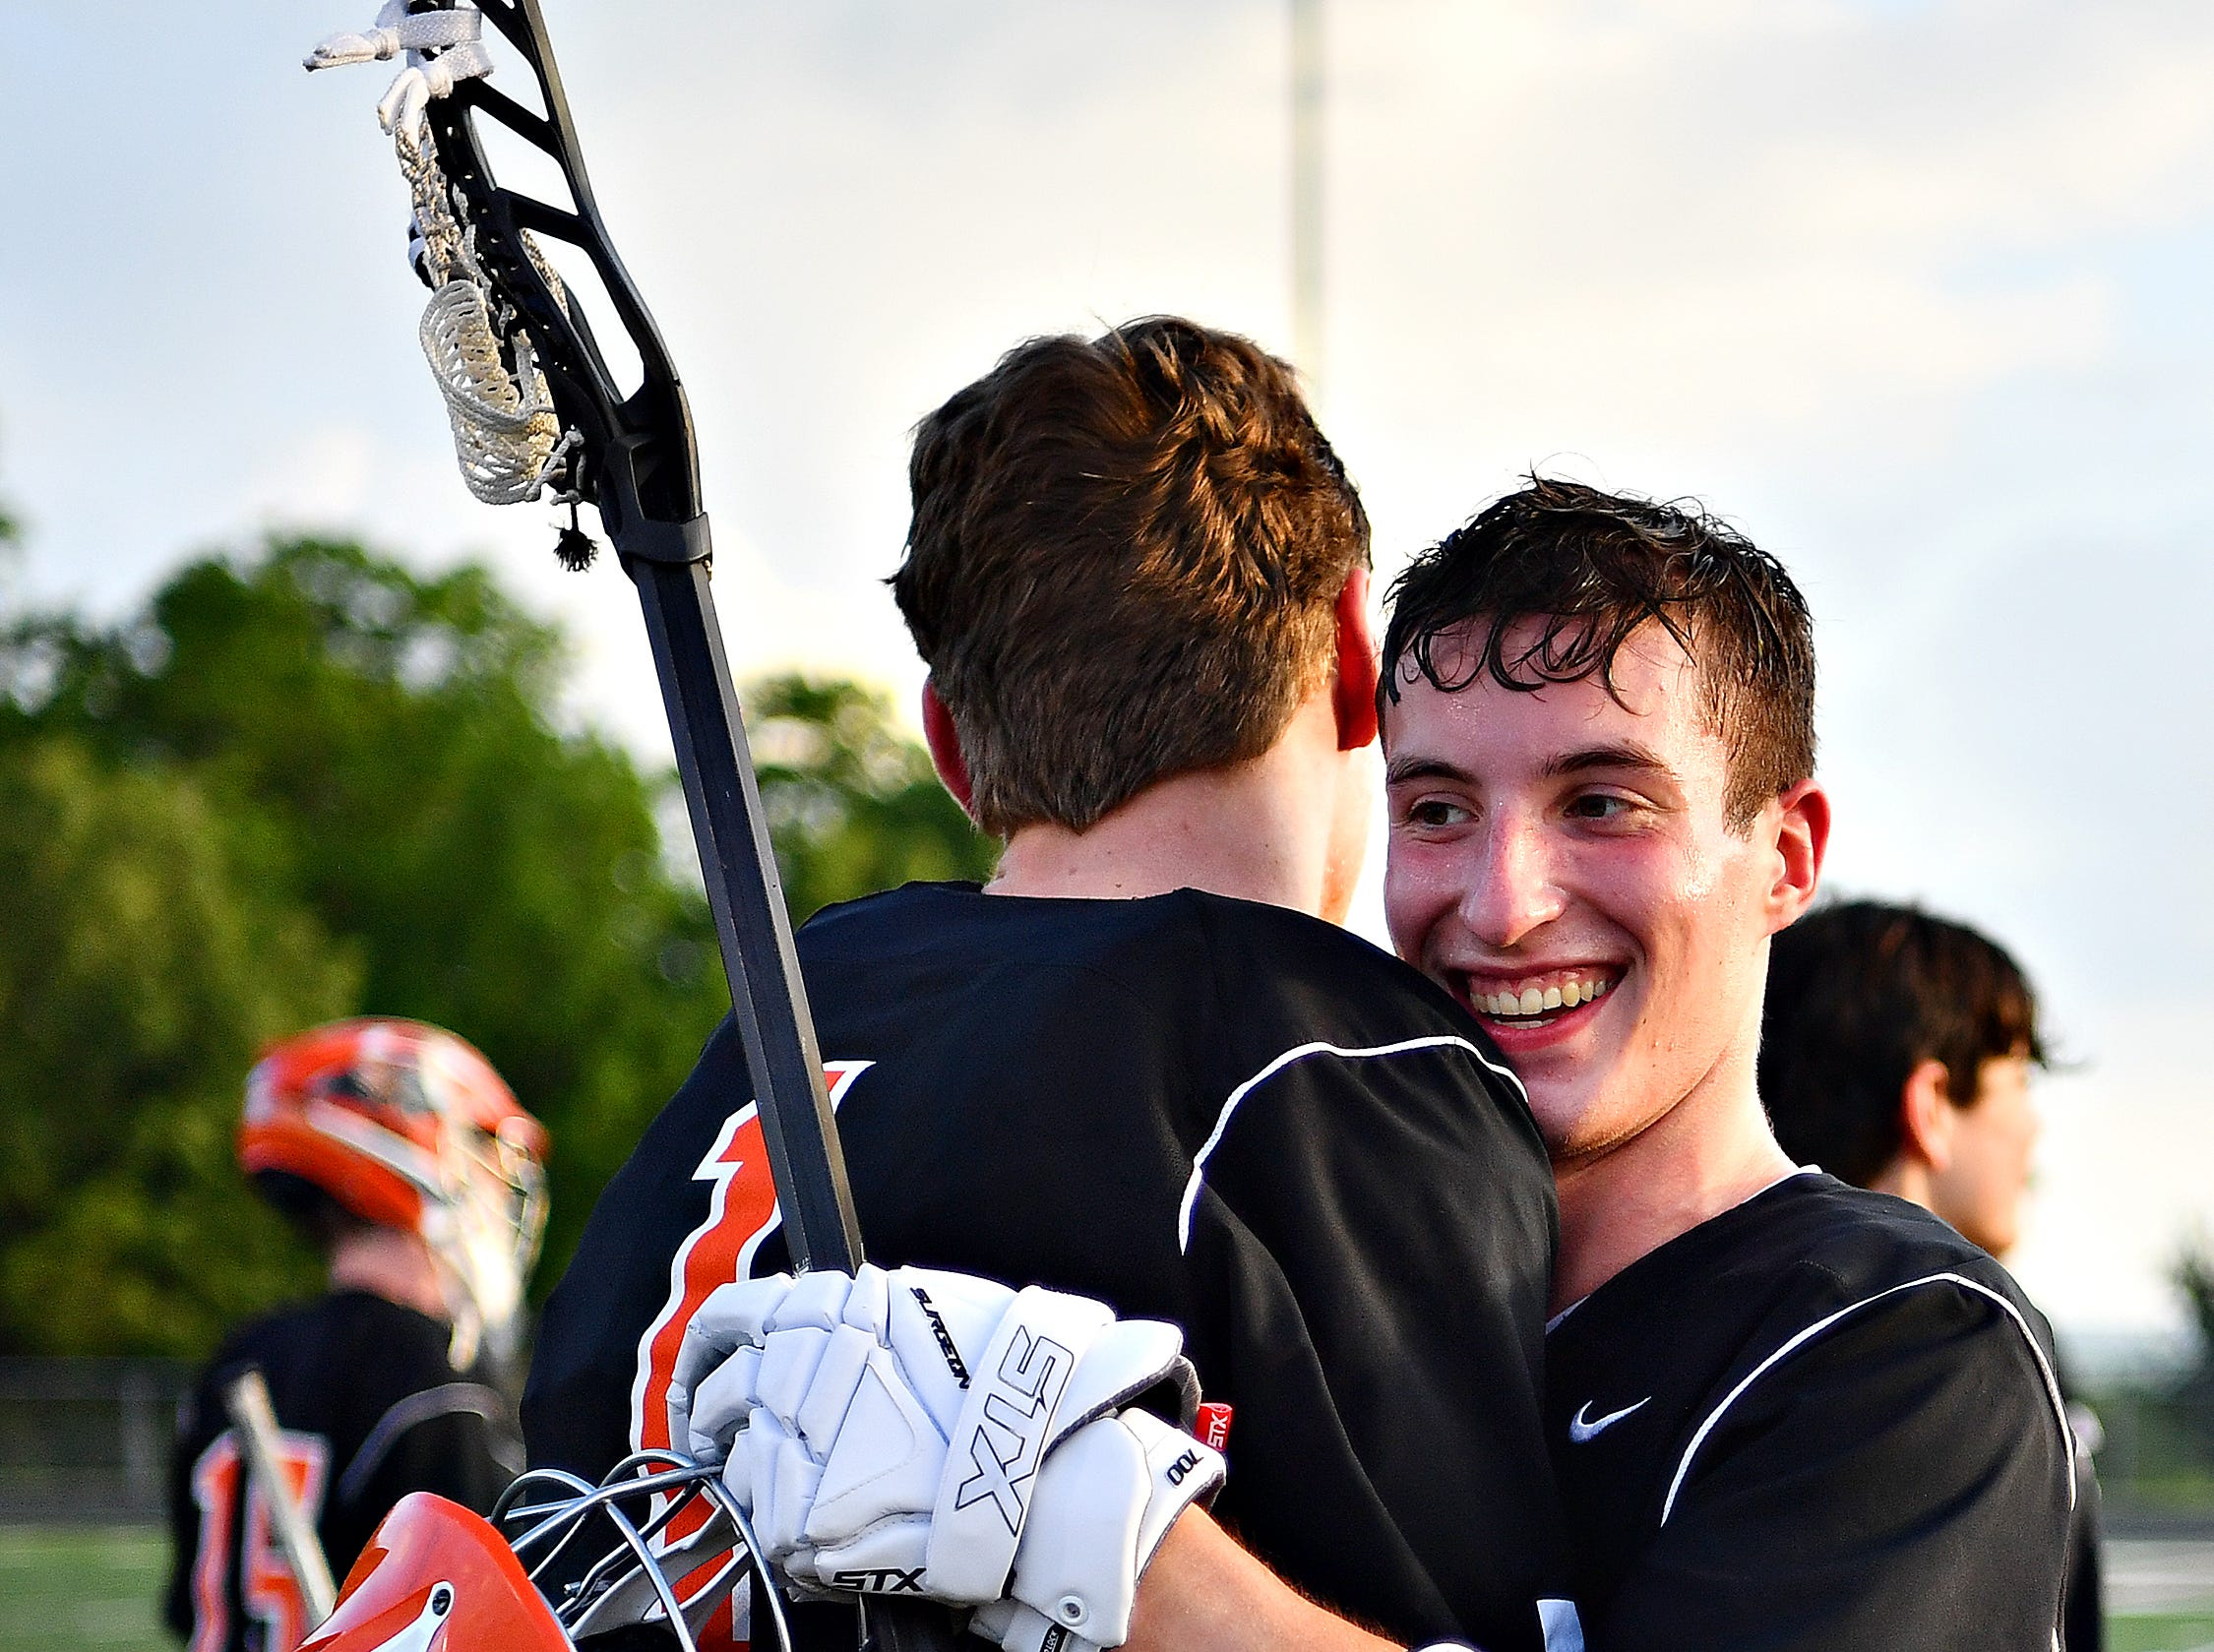 Central York celebrates a 13-5 win over York Catholic during lacrosse championship action at Eastern York Senior High School in Wrightsville, Friday, May 10, 2019. Dawn J. Sagert photo